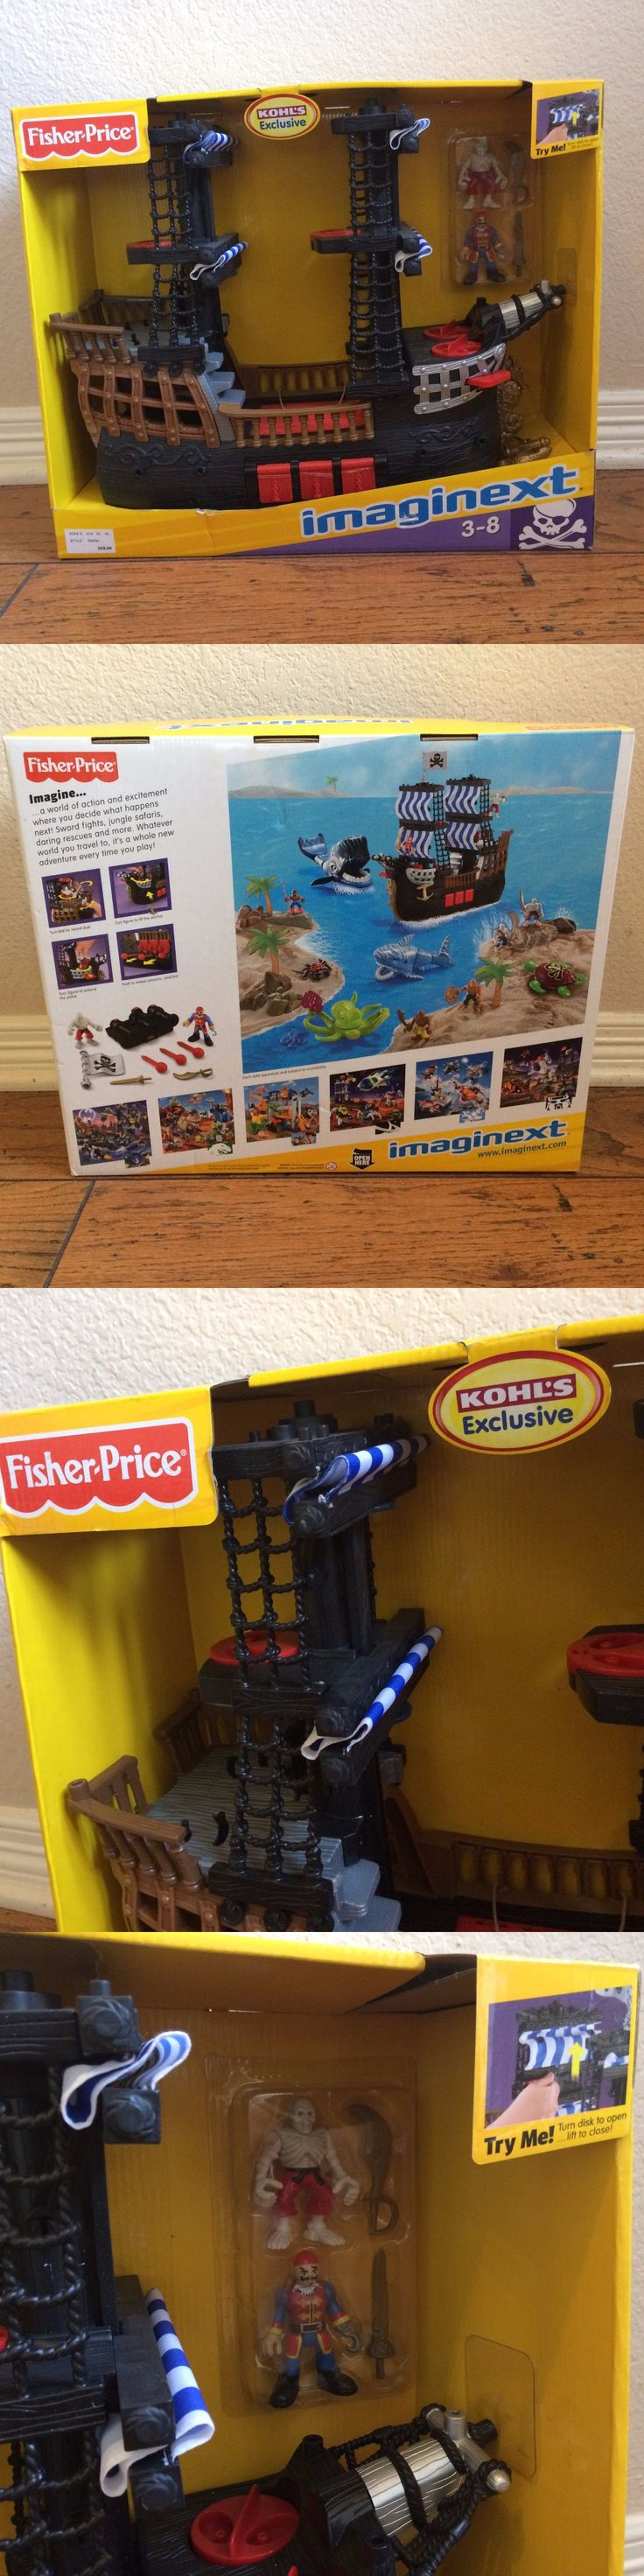 Imaginext 50305: New! Fisher Price Imaginext Pirate Ship Playset Kohls Toy Blue Sails -Quick Ship -> BUY IT NOW ONLY: $60 on eBay!